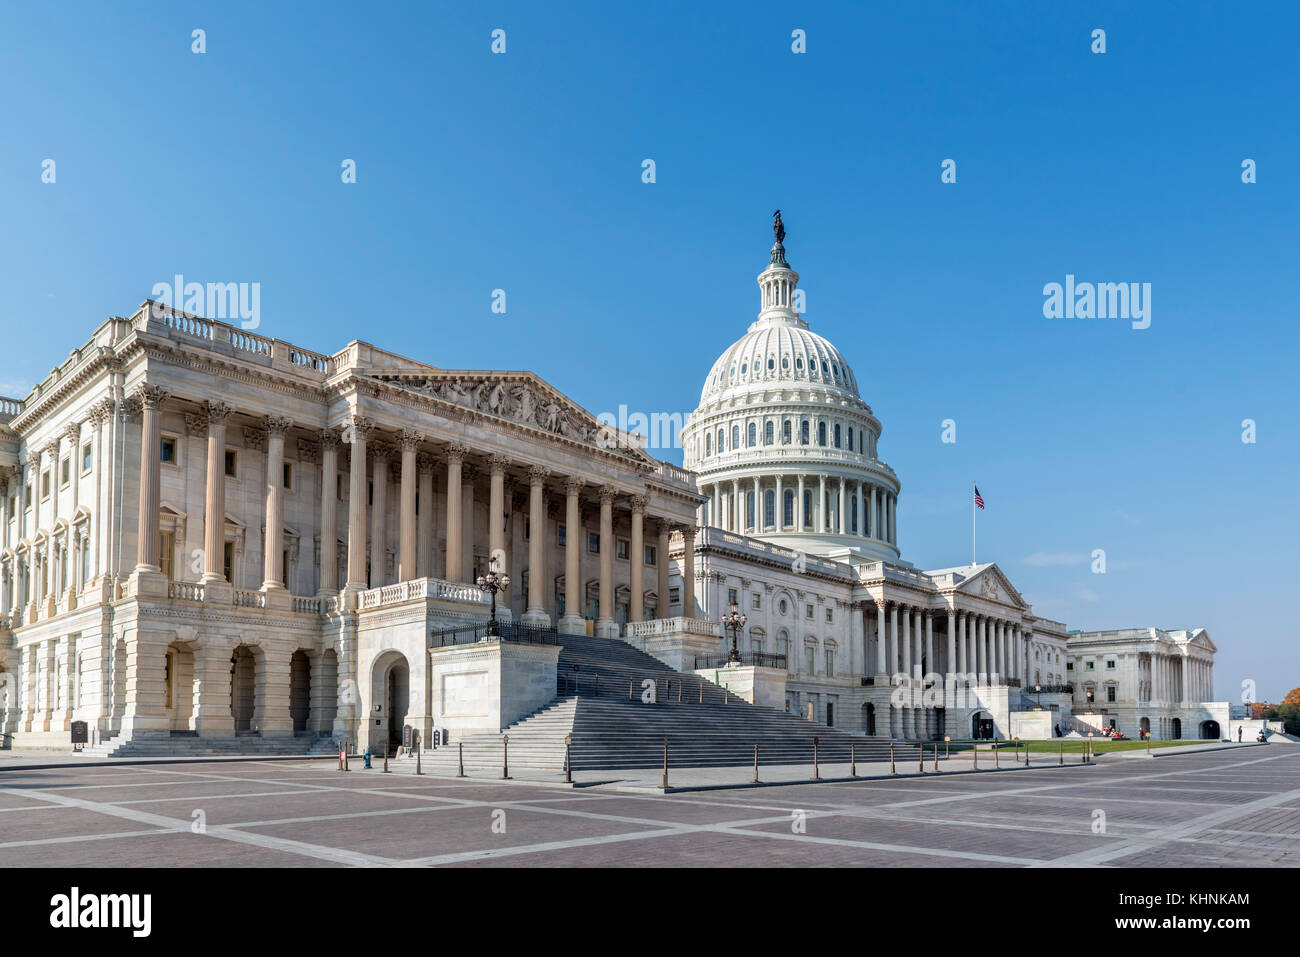 East facade of the United States Capitol, Washington DC, USA - Stock Image